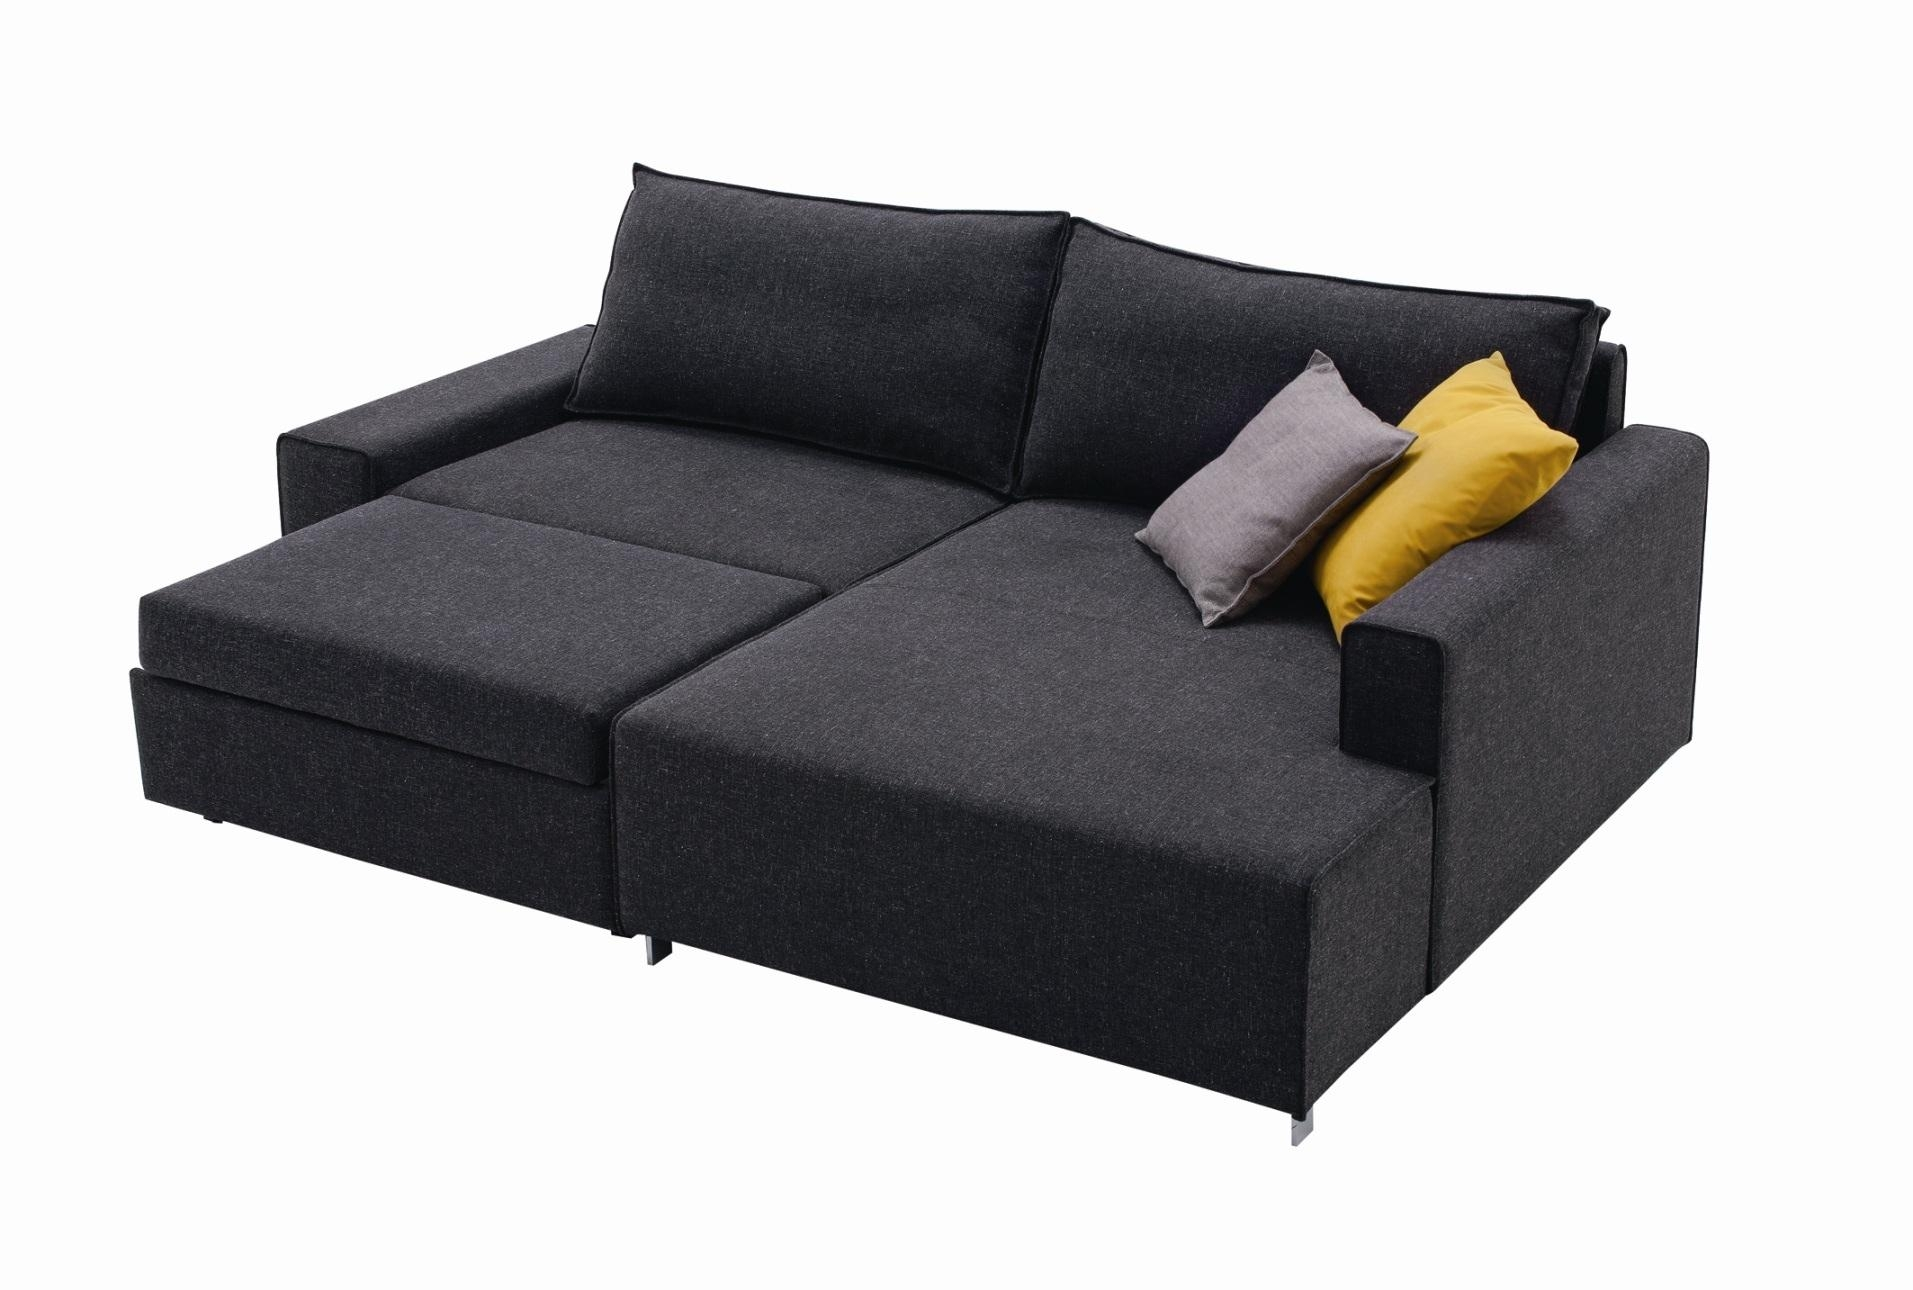 Mini Sofa 20 Best Collection Of Mini Sofa Beds Sofa Ideas